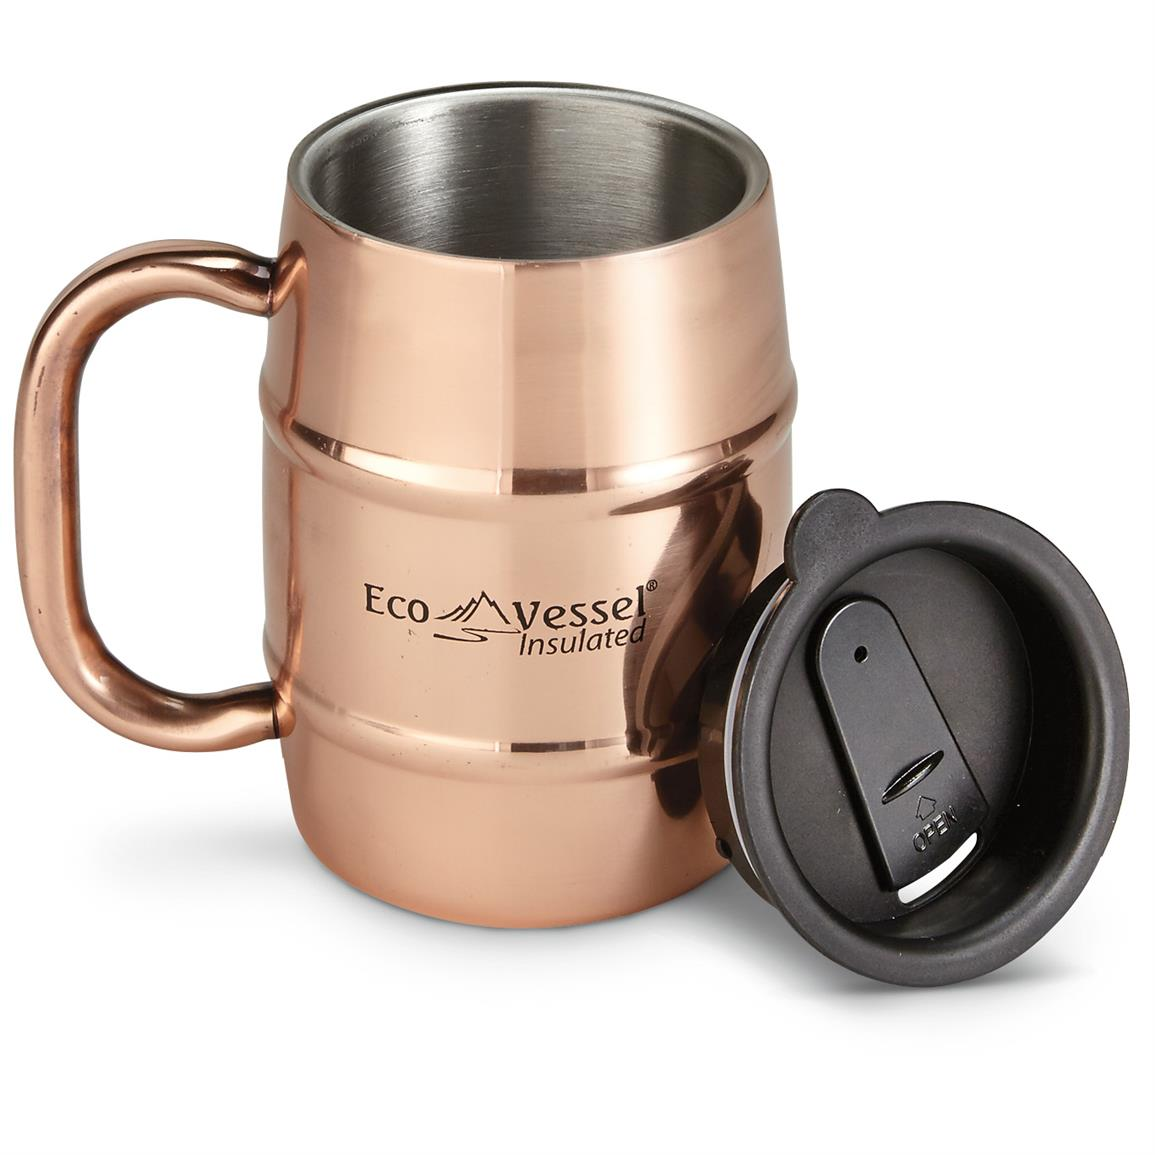 Eco Vessel Double Barrel Insulated Copper Beer / Coffee Mug, 16 oz